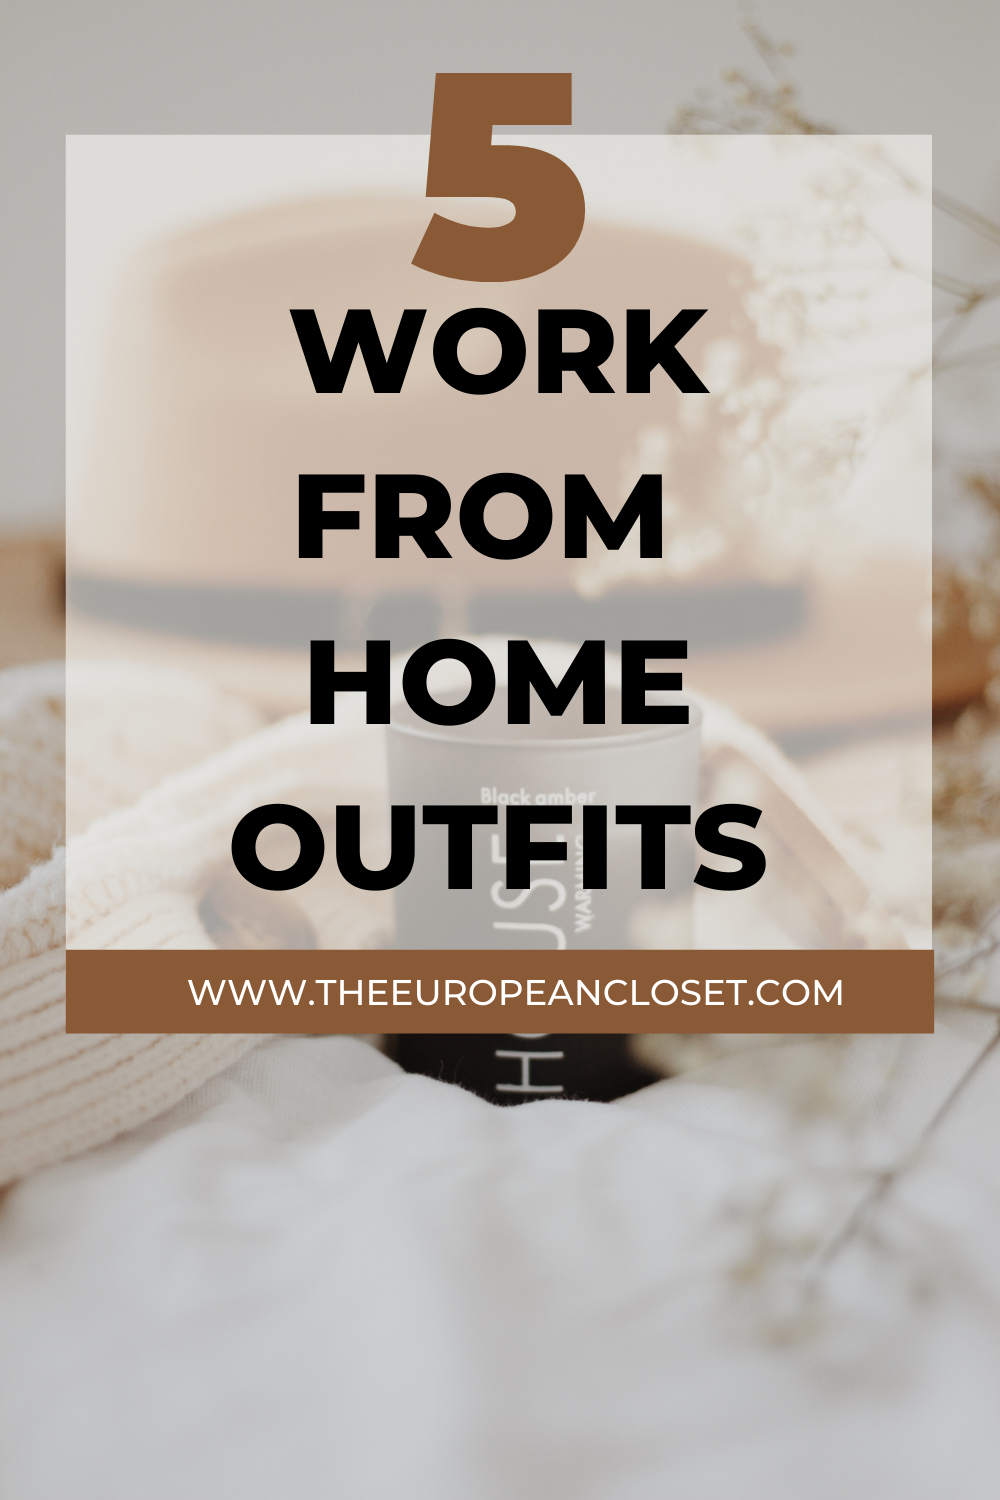 When it comes to outfits to wear while working from home, the key is to make the outfits comfortable. Here are 5 work from home outfits.